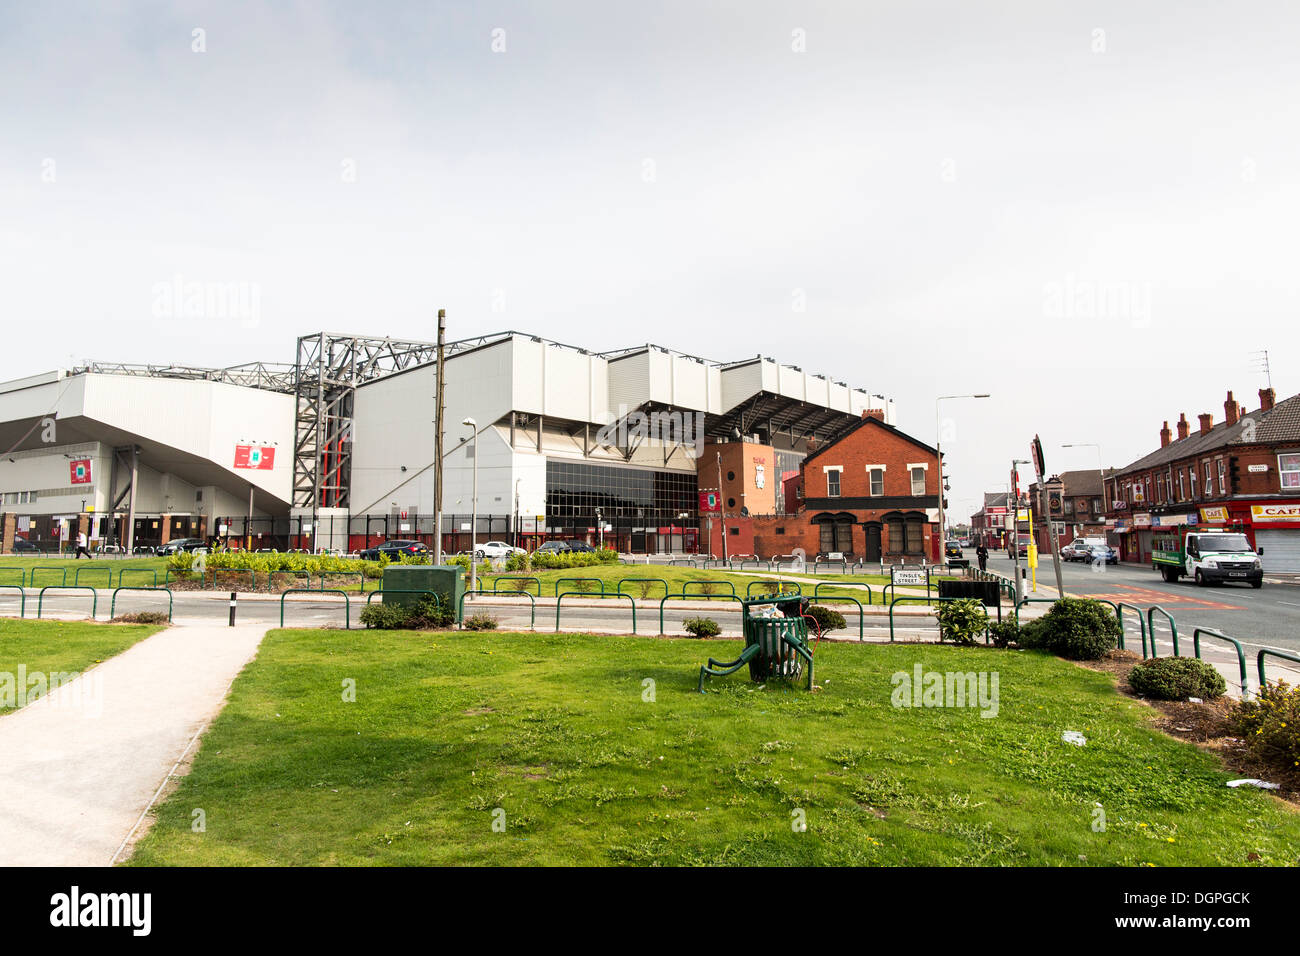 Liverpool FC stadium, Anfield. The club plans to redevelop the stadium to accommodate 60,000 fans. - Stock Image